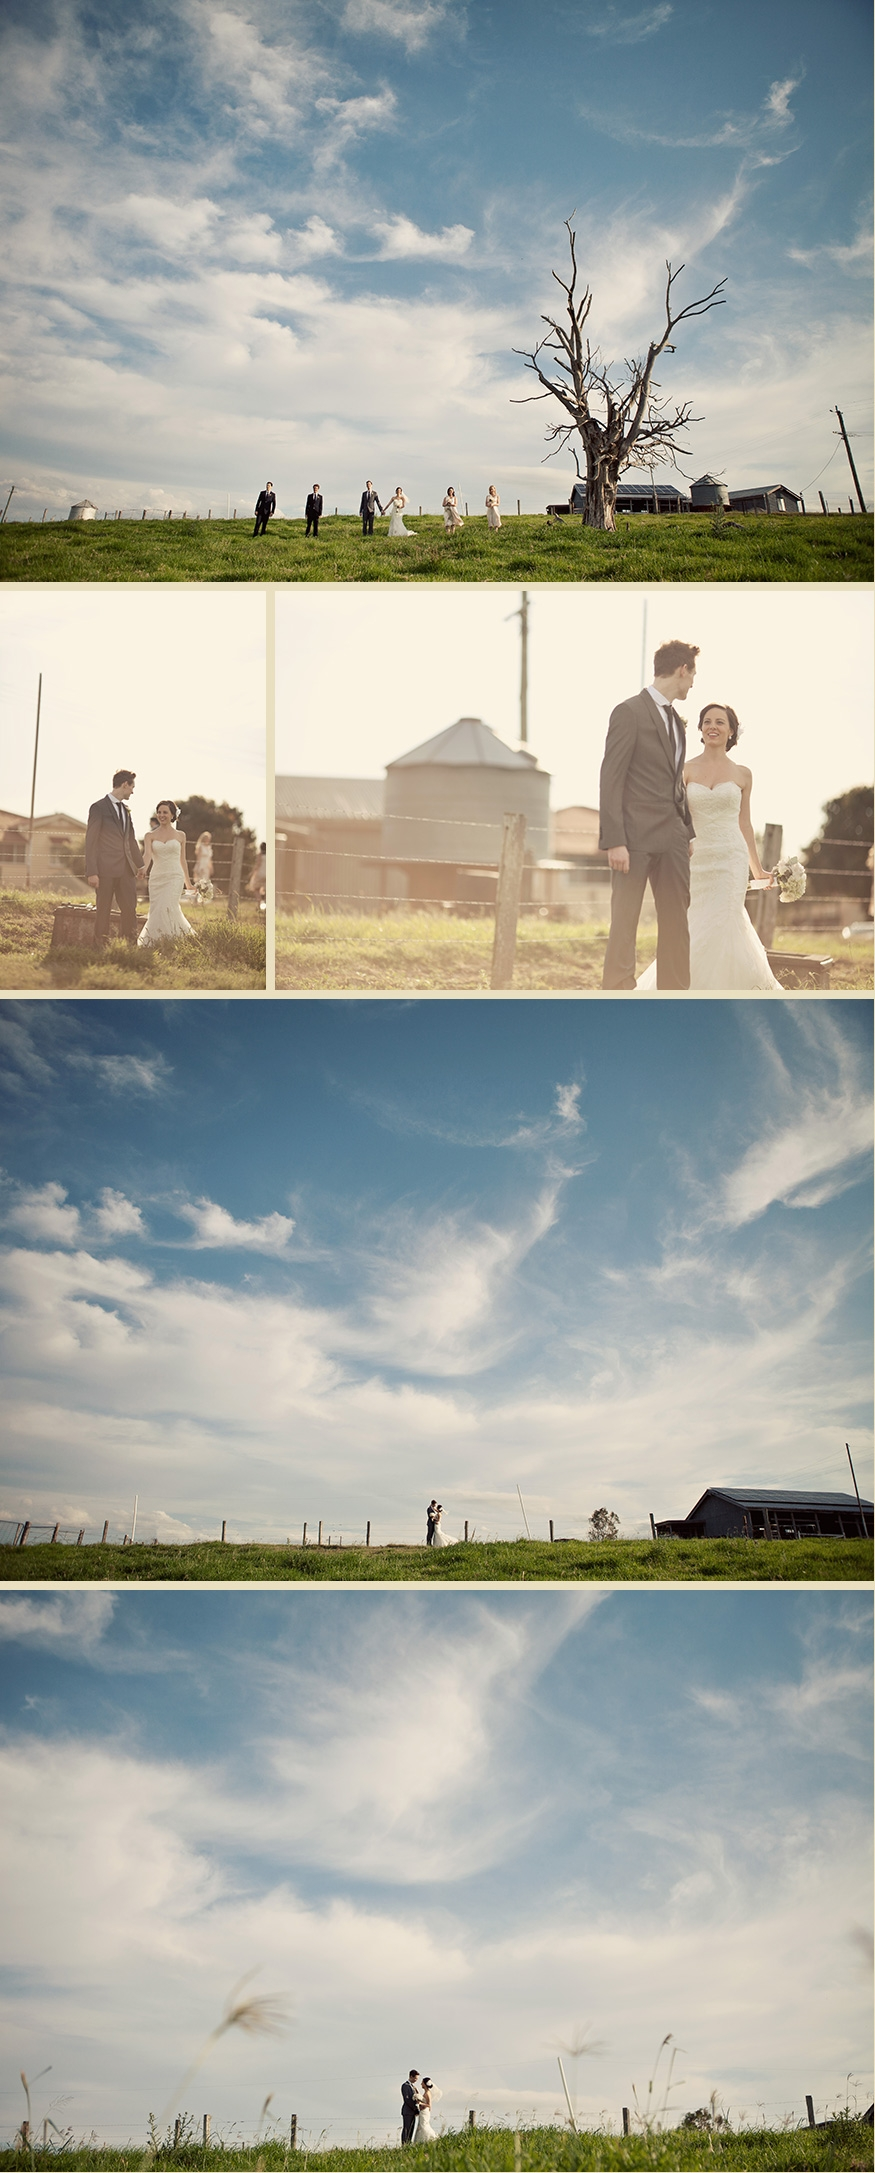 Brisbane Wedding Phoographer Blog-collage-1326252088762